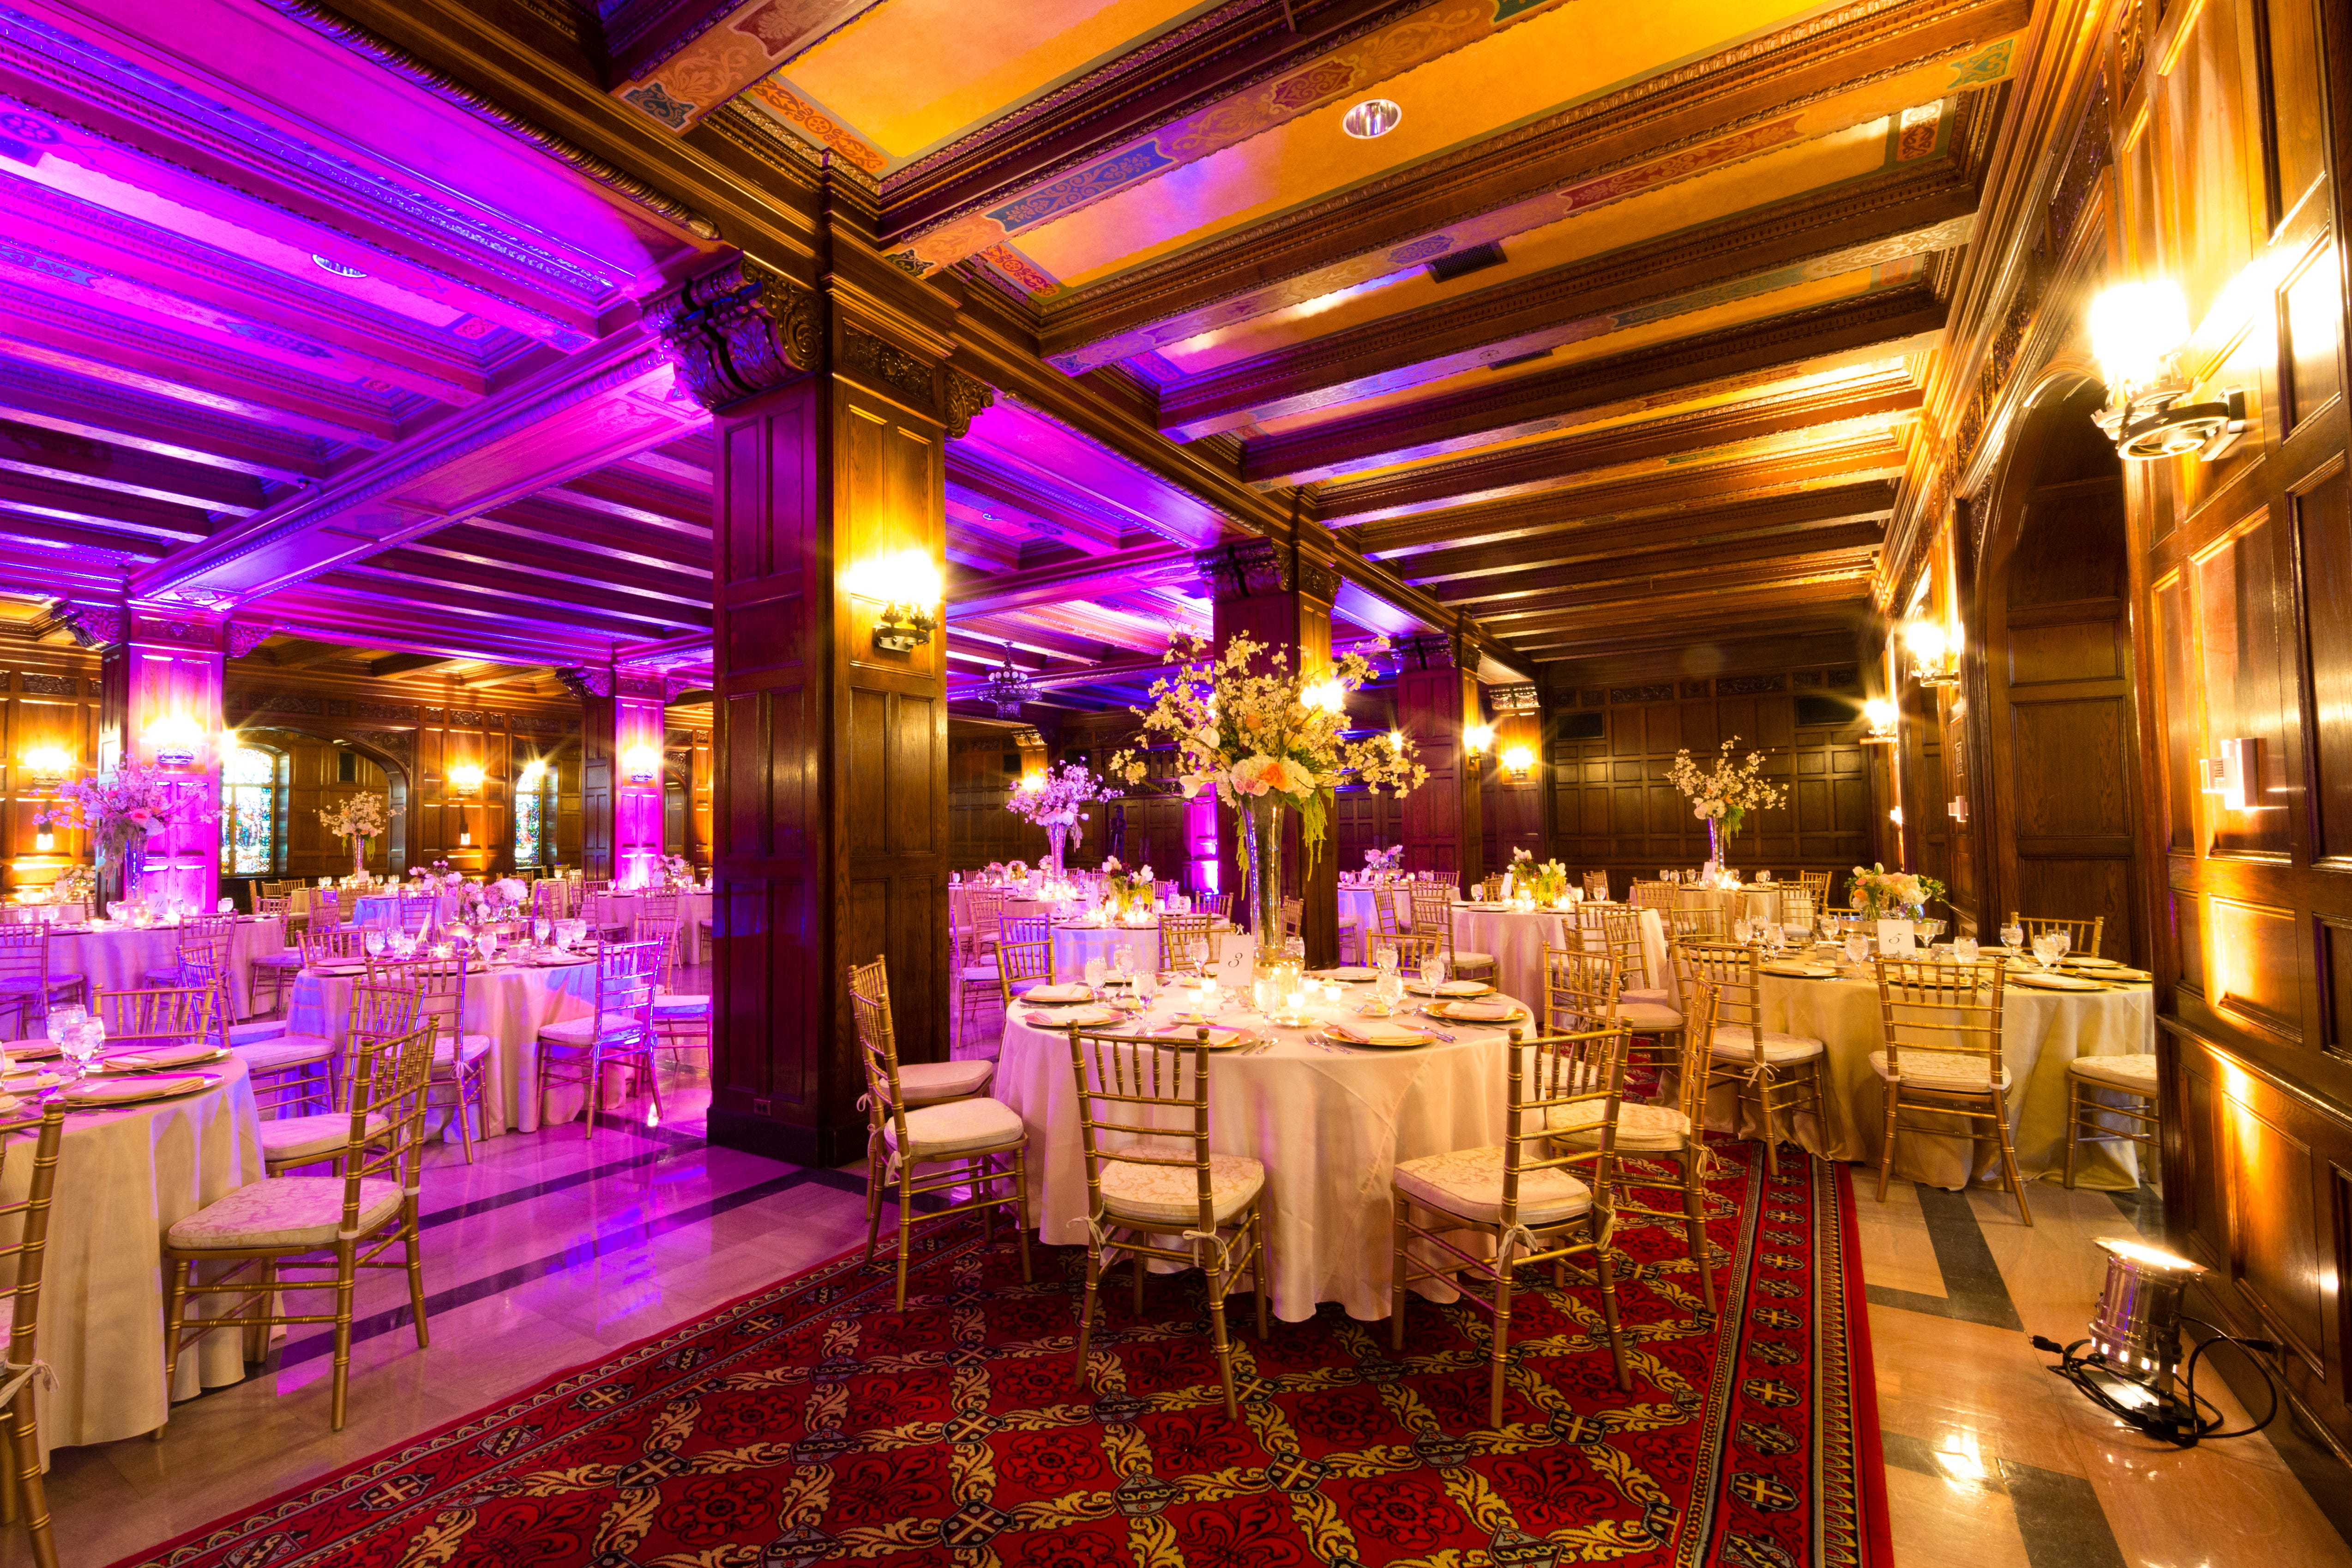 Wedding venues in indianapolis indiana for cheap